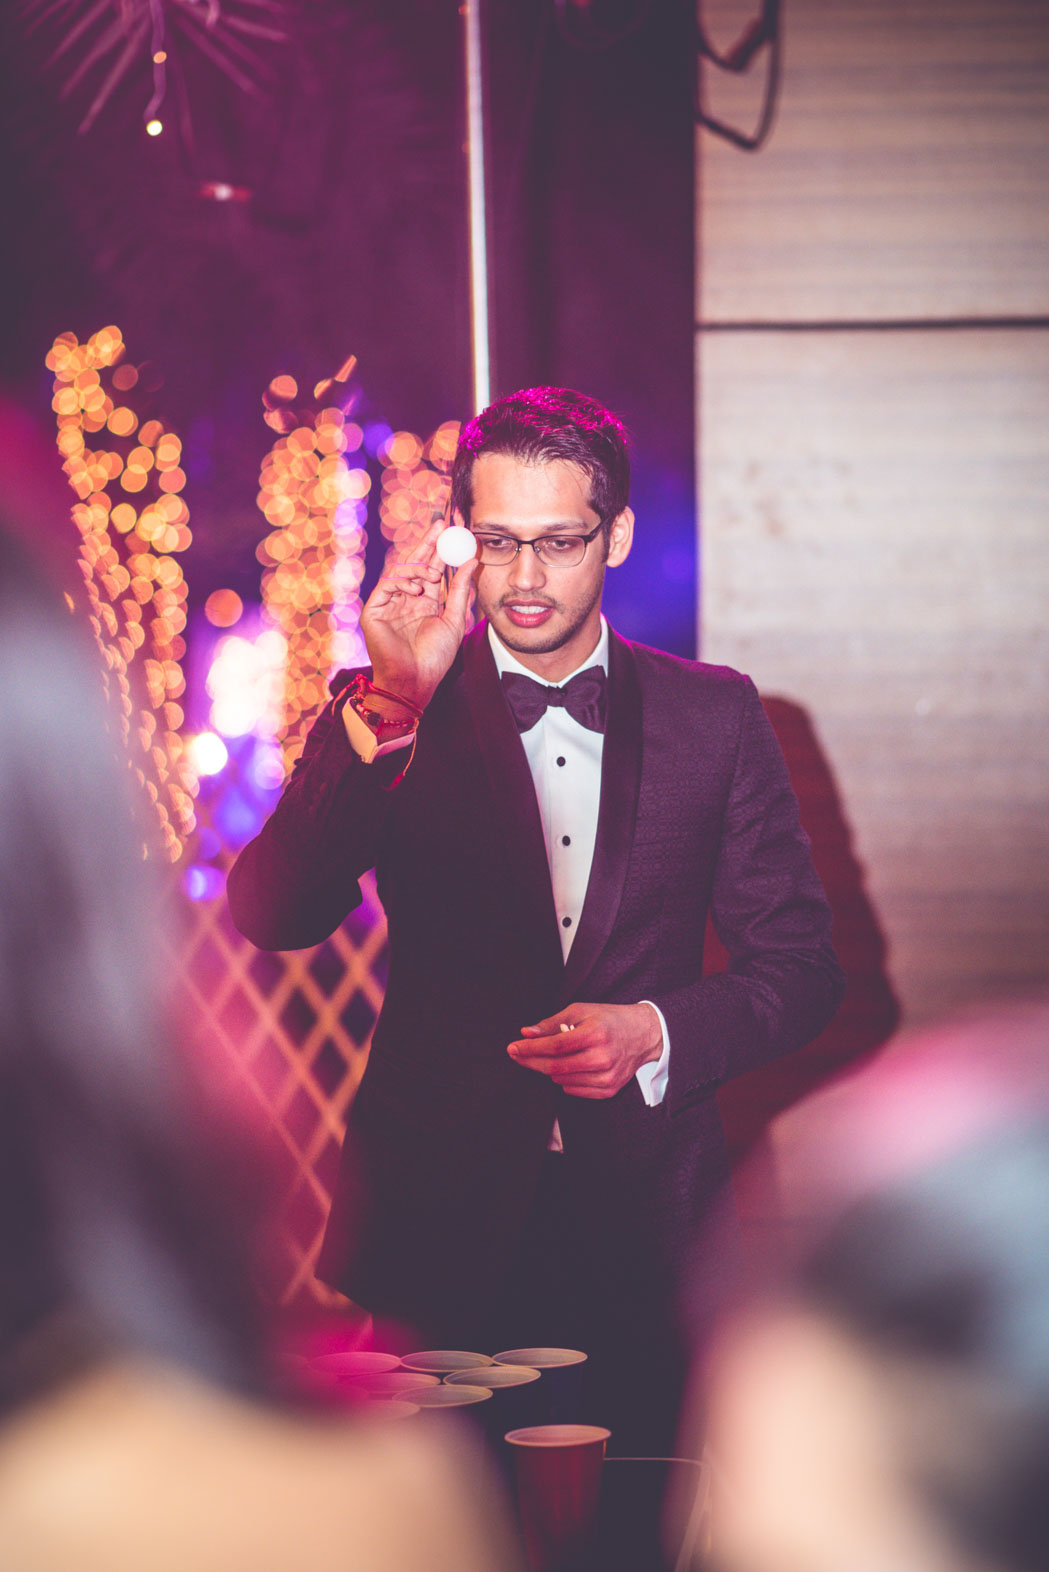 StRegis-Palladium-Mumbai-Candid-Wedding-Photography-3